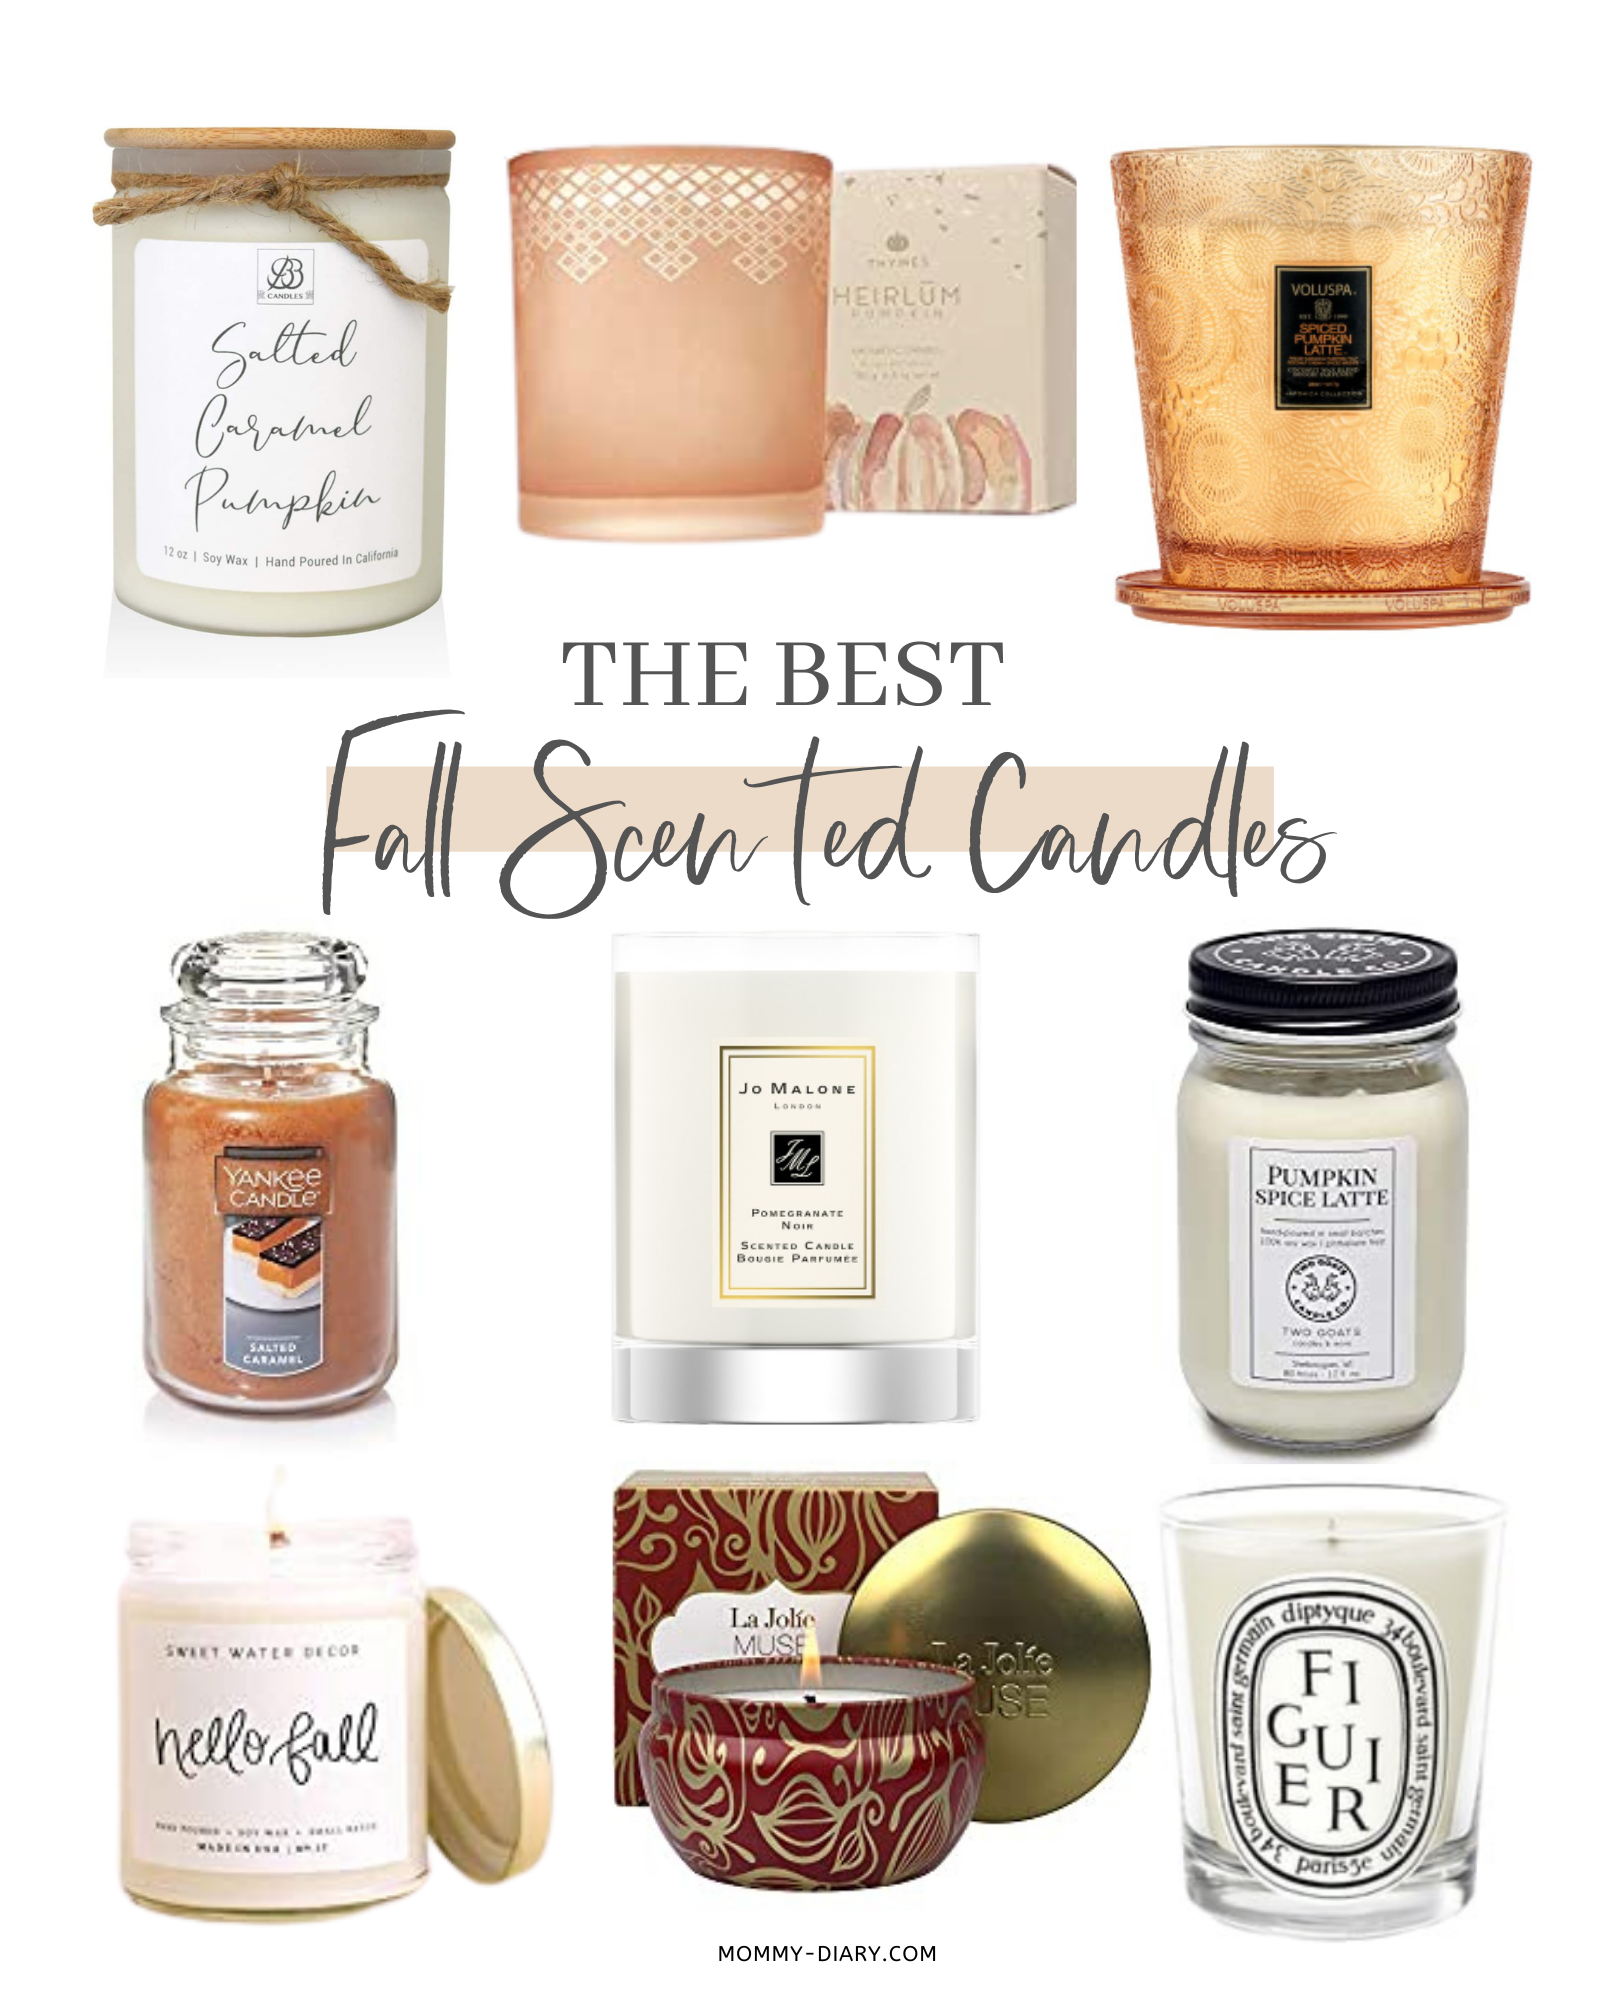 The Best Fall Scented Candles